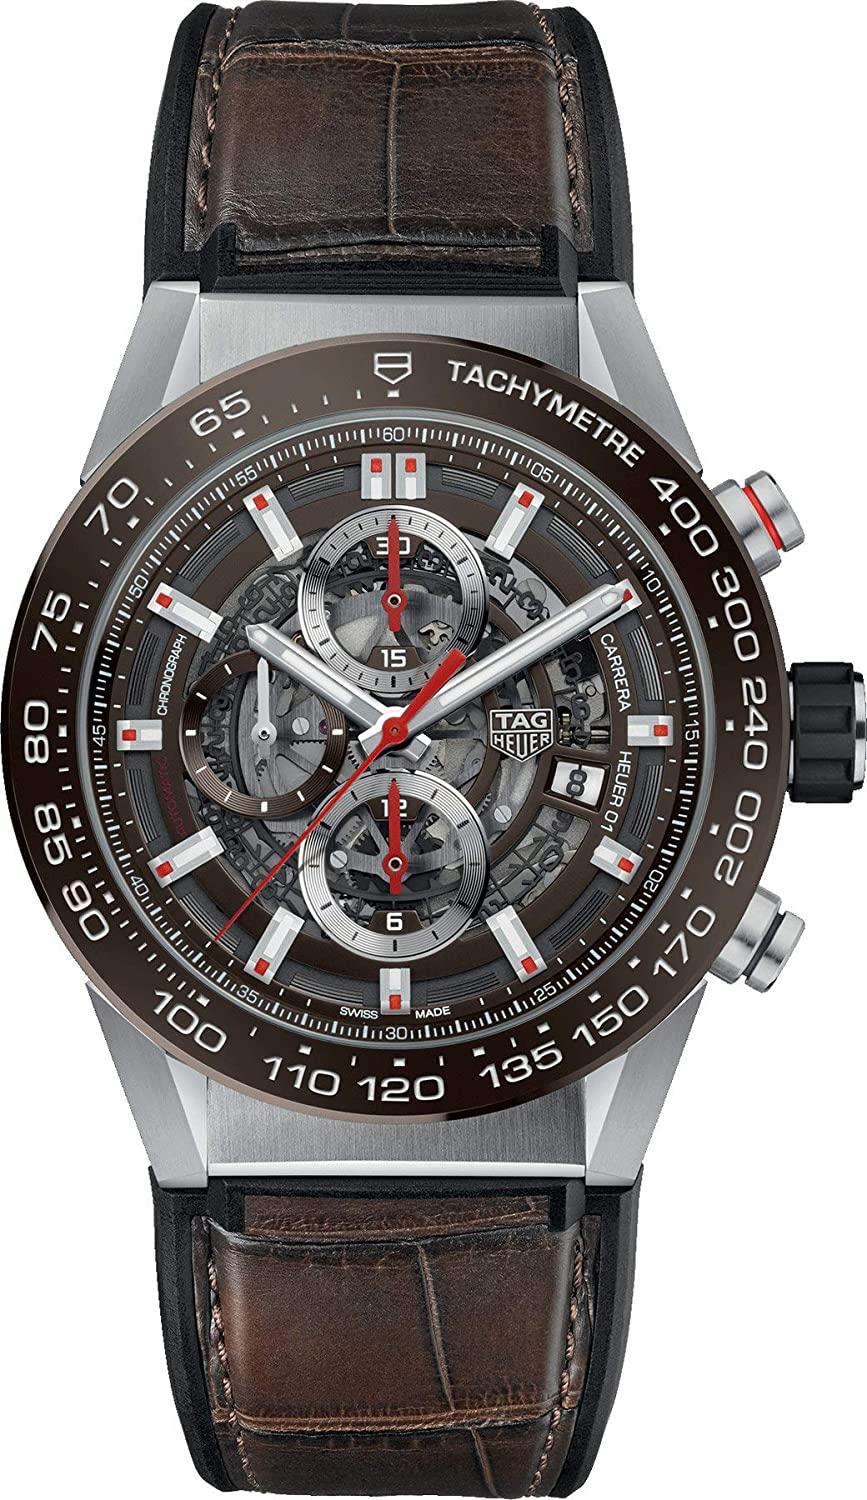 Orologio Tag Heuer Carrera Chrono CAR201UFC6405 (4540674277489)